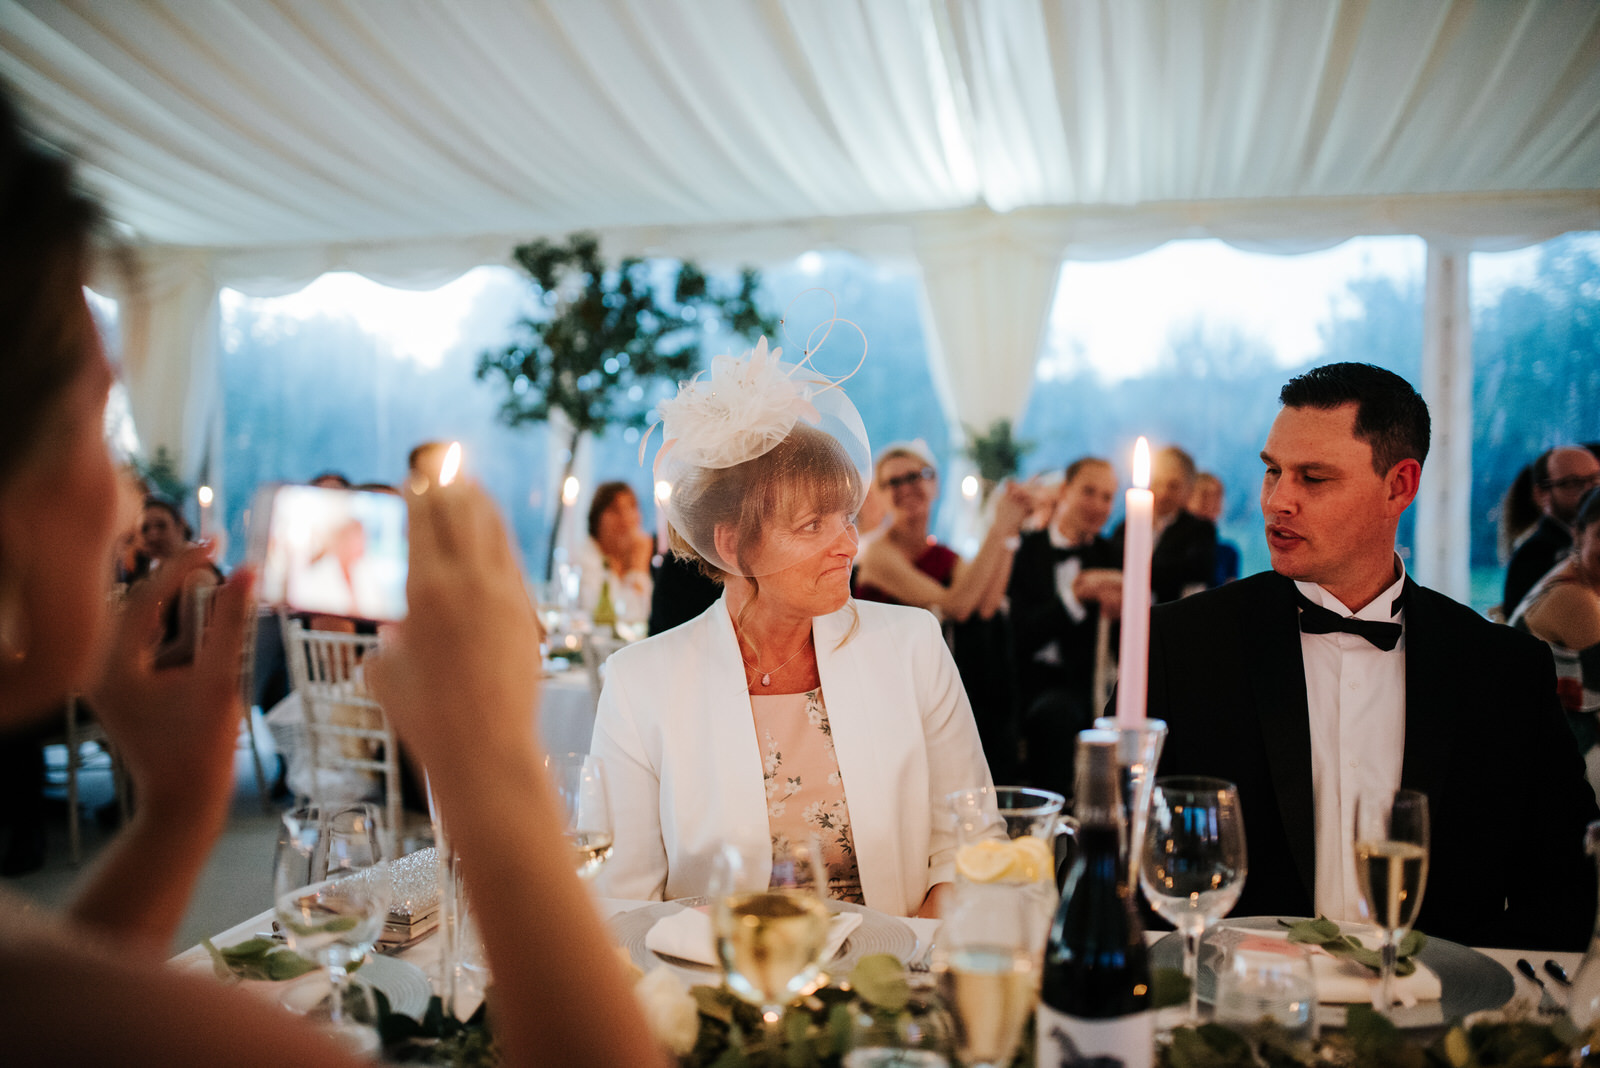 Mother of the Groom gets emotional as guests start singing Happy